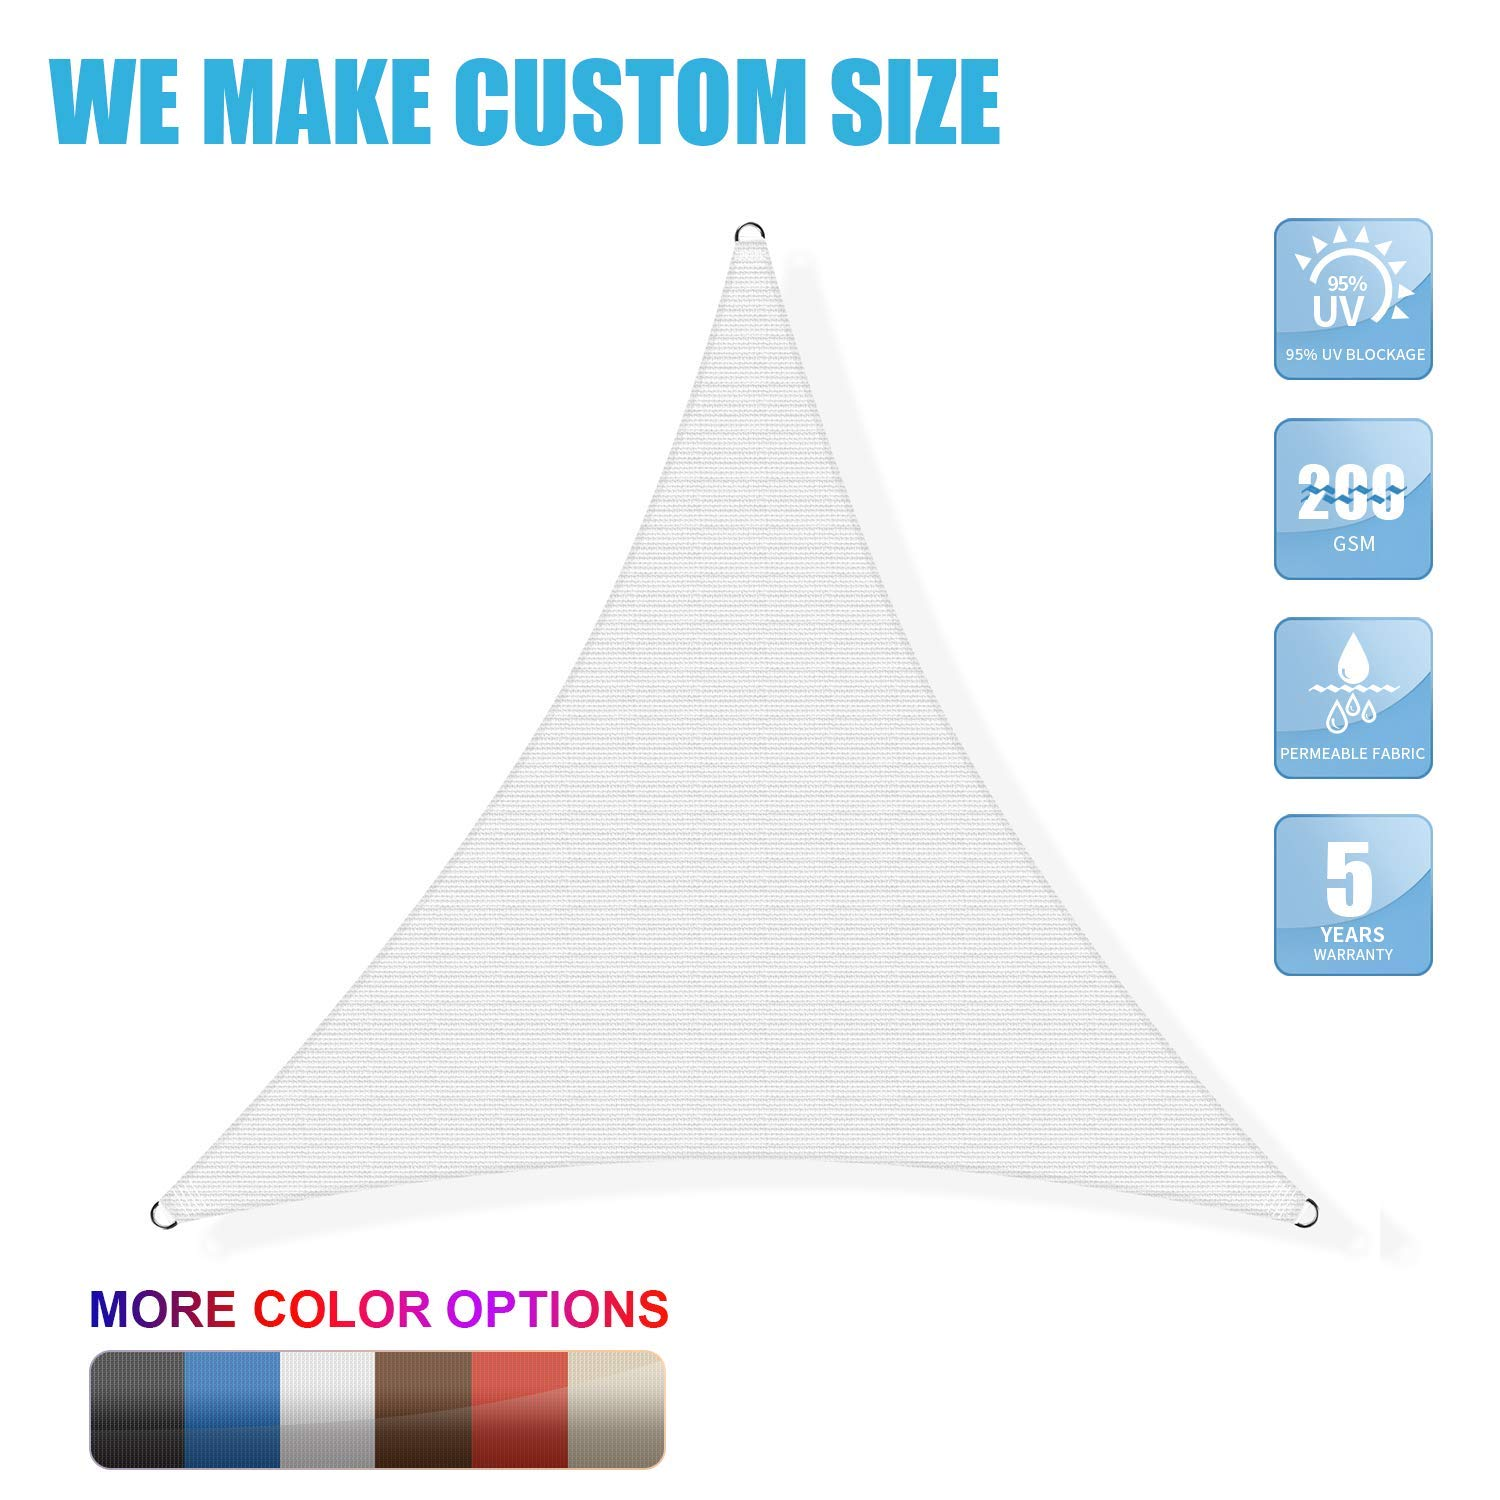 Amgo Custom Size Right Triangle 12 x 16 x 20 White Triangle Sun Shade Sail Canopy Awning, 95 UV Blockage, Water Air Permeable, Commercial and Residential Available for Custom Sizes